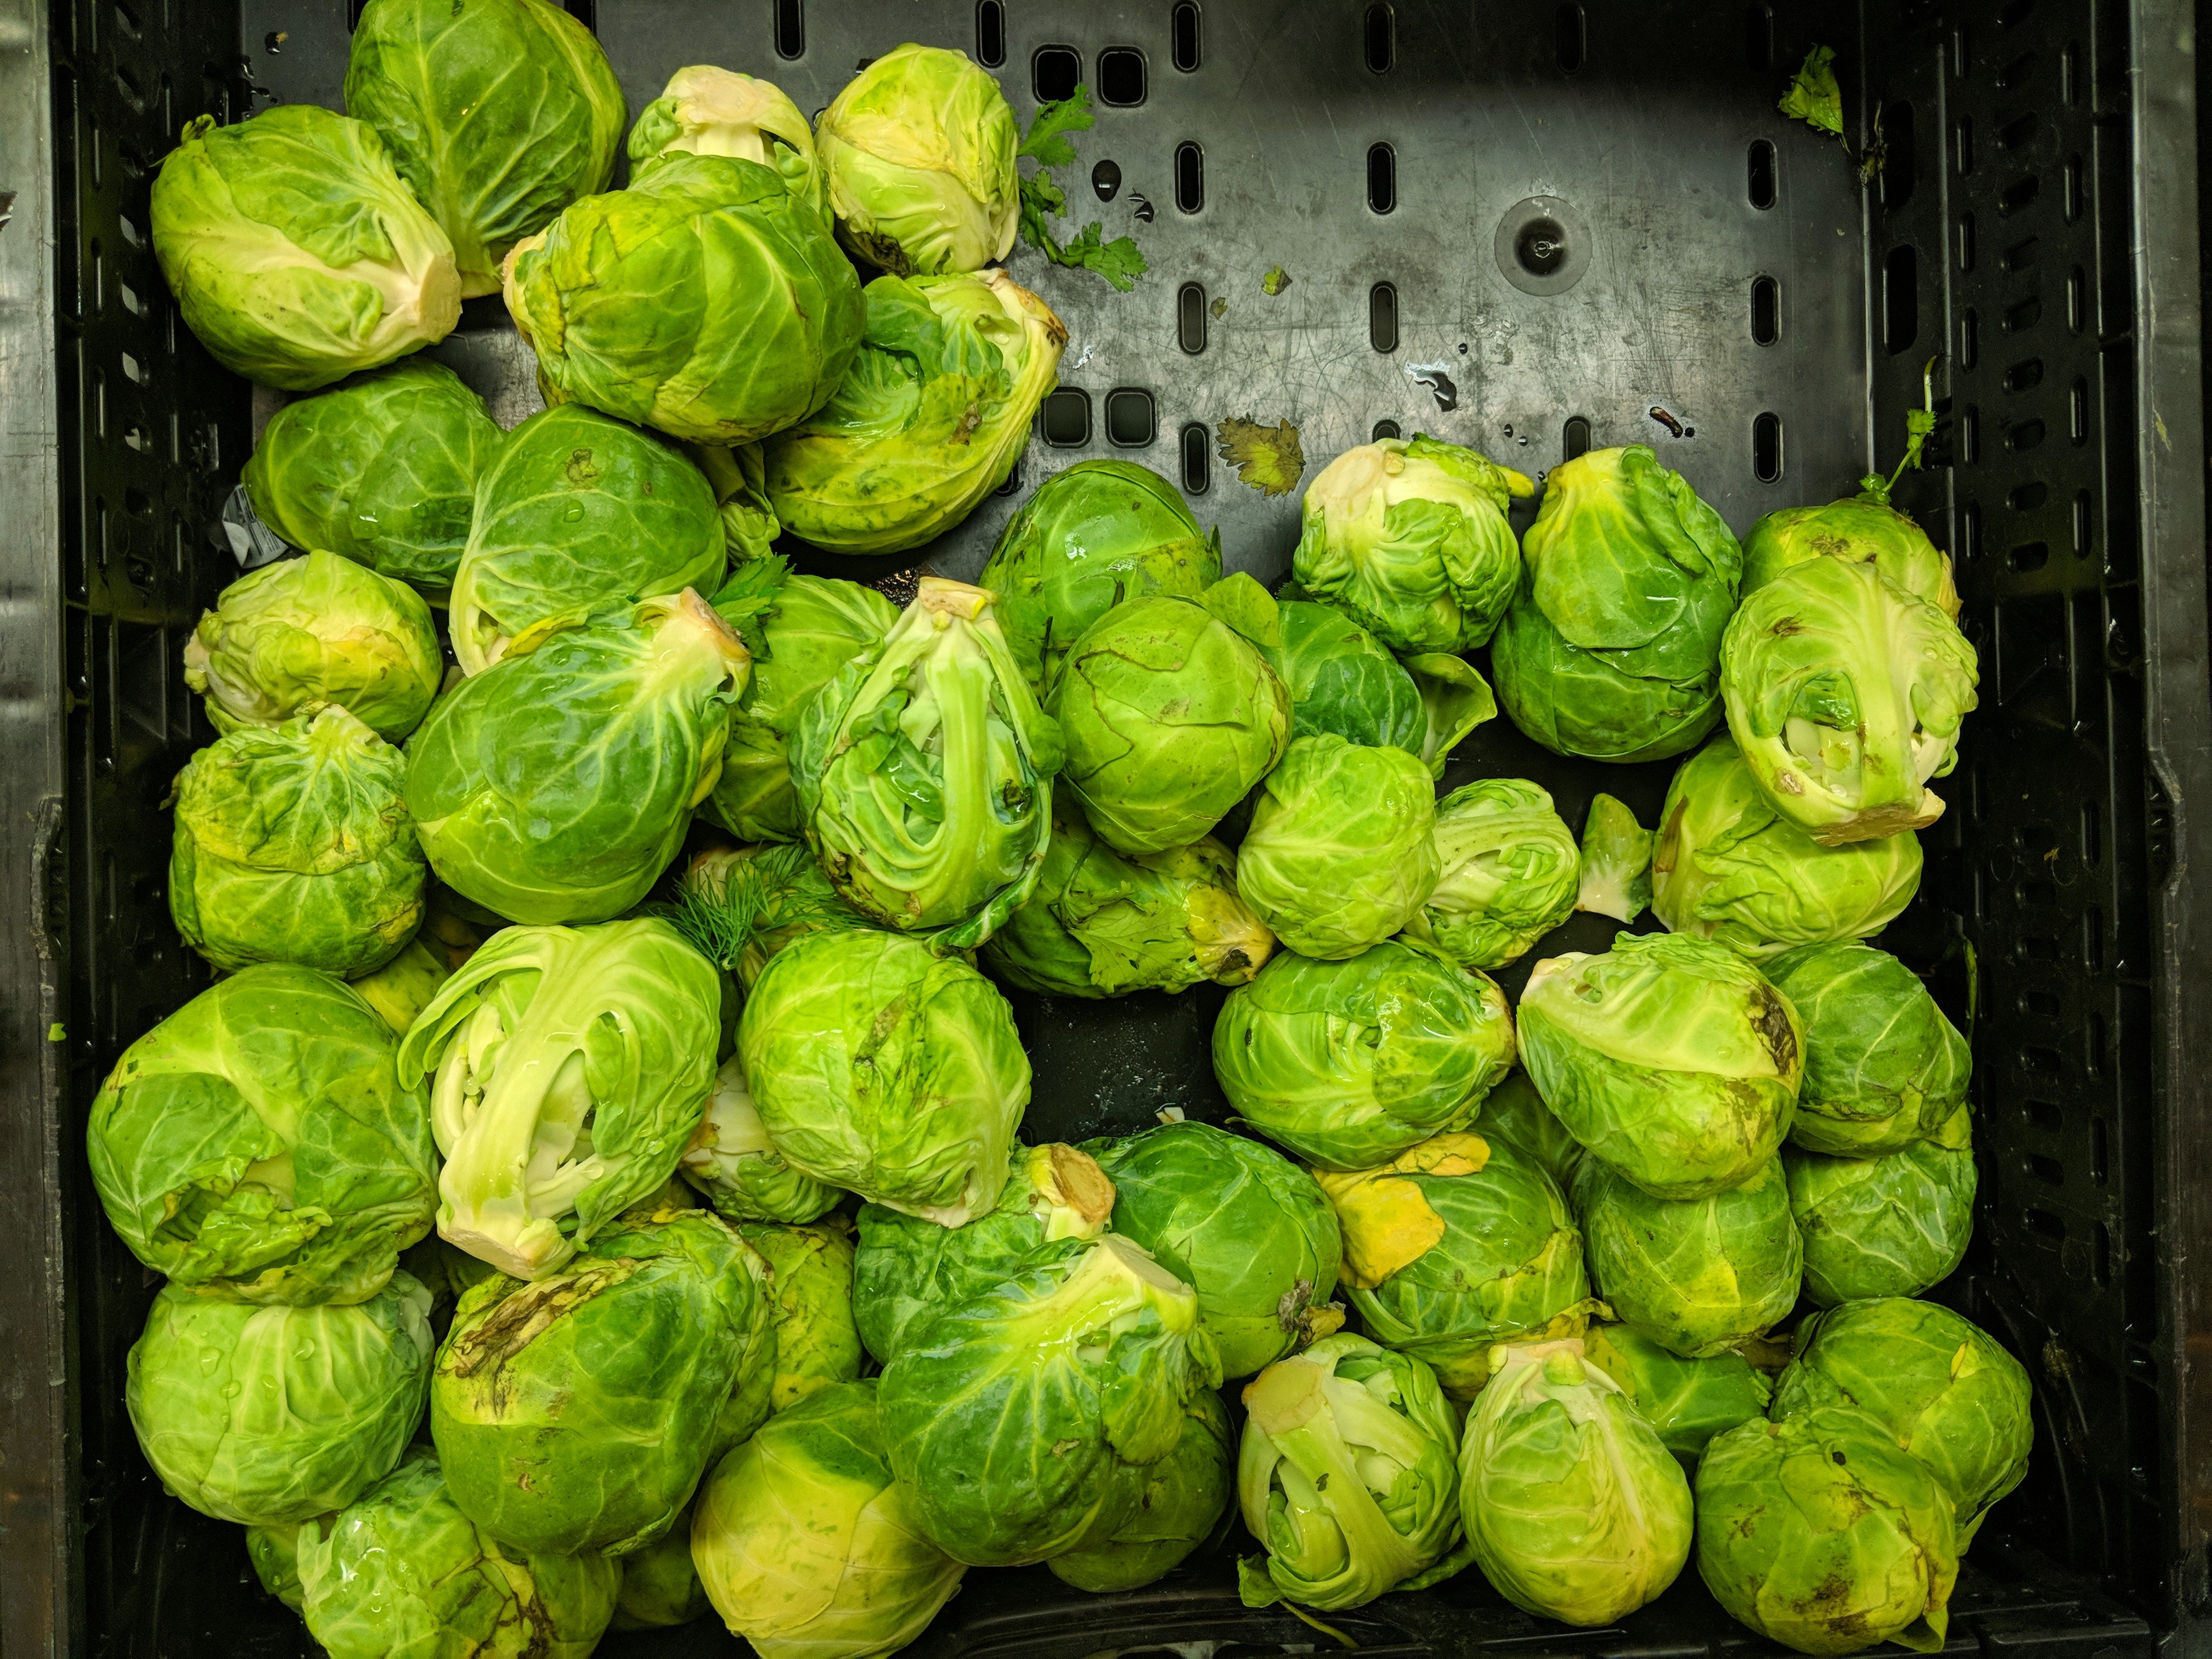 Chilli and Garlic Brussels Sprouts